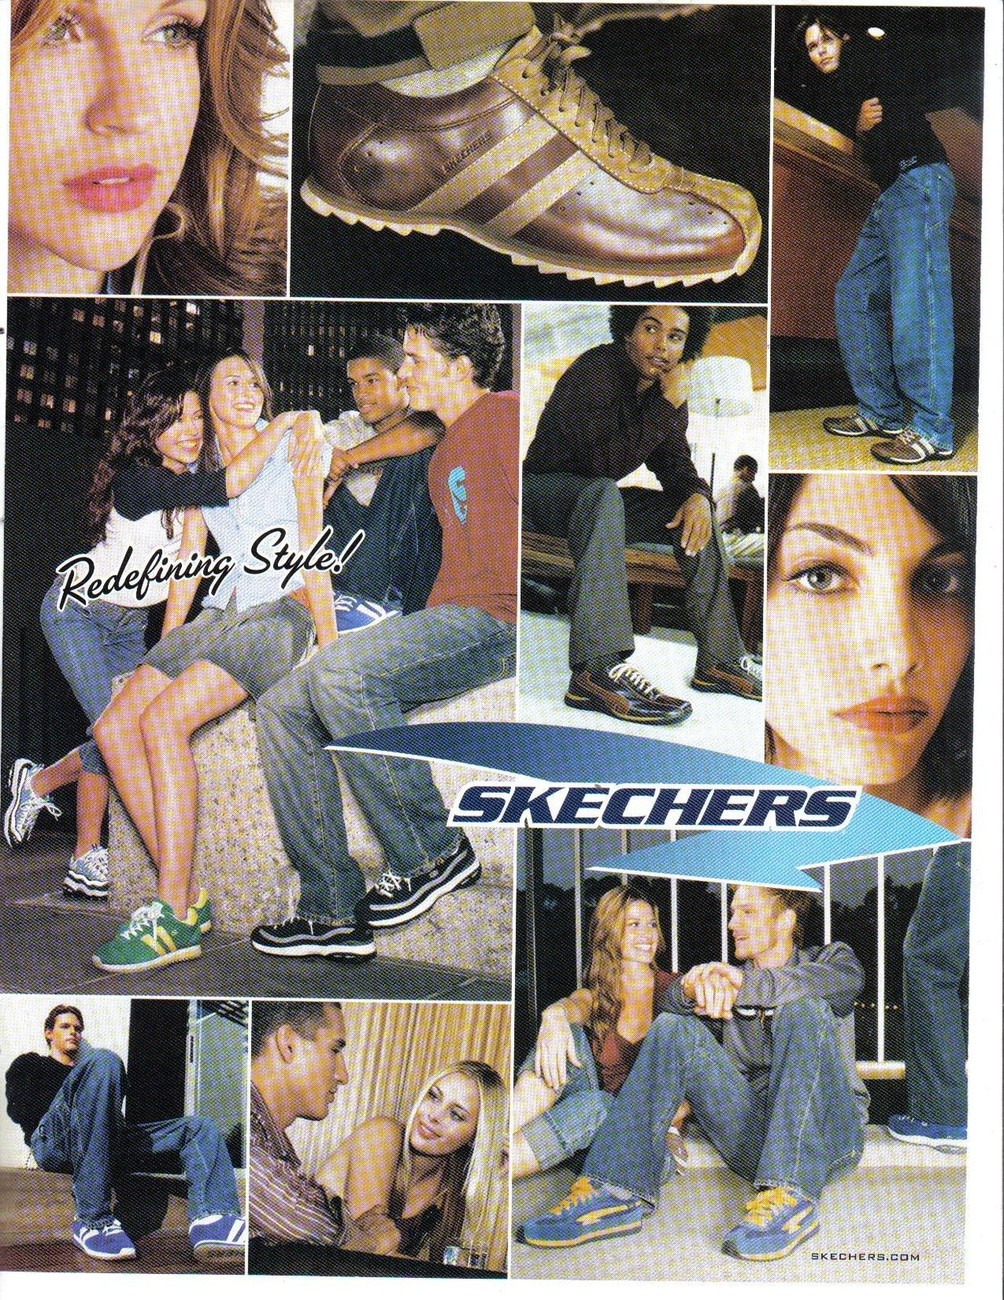 Primary image for Skechers 2002 Redefining Style! 2002 Full Page Color Print Ad Near Mint